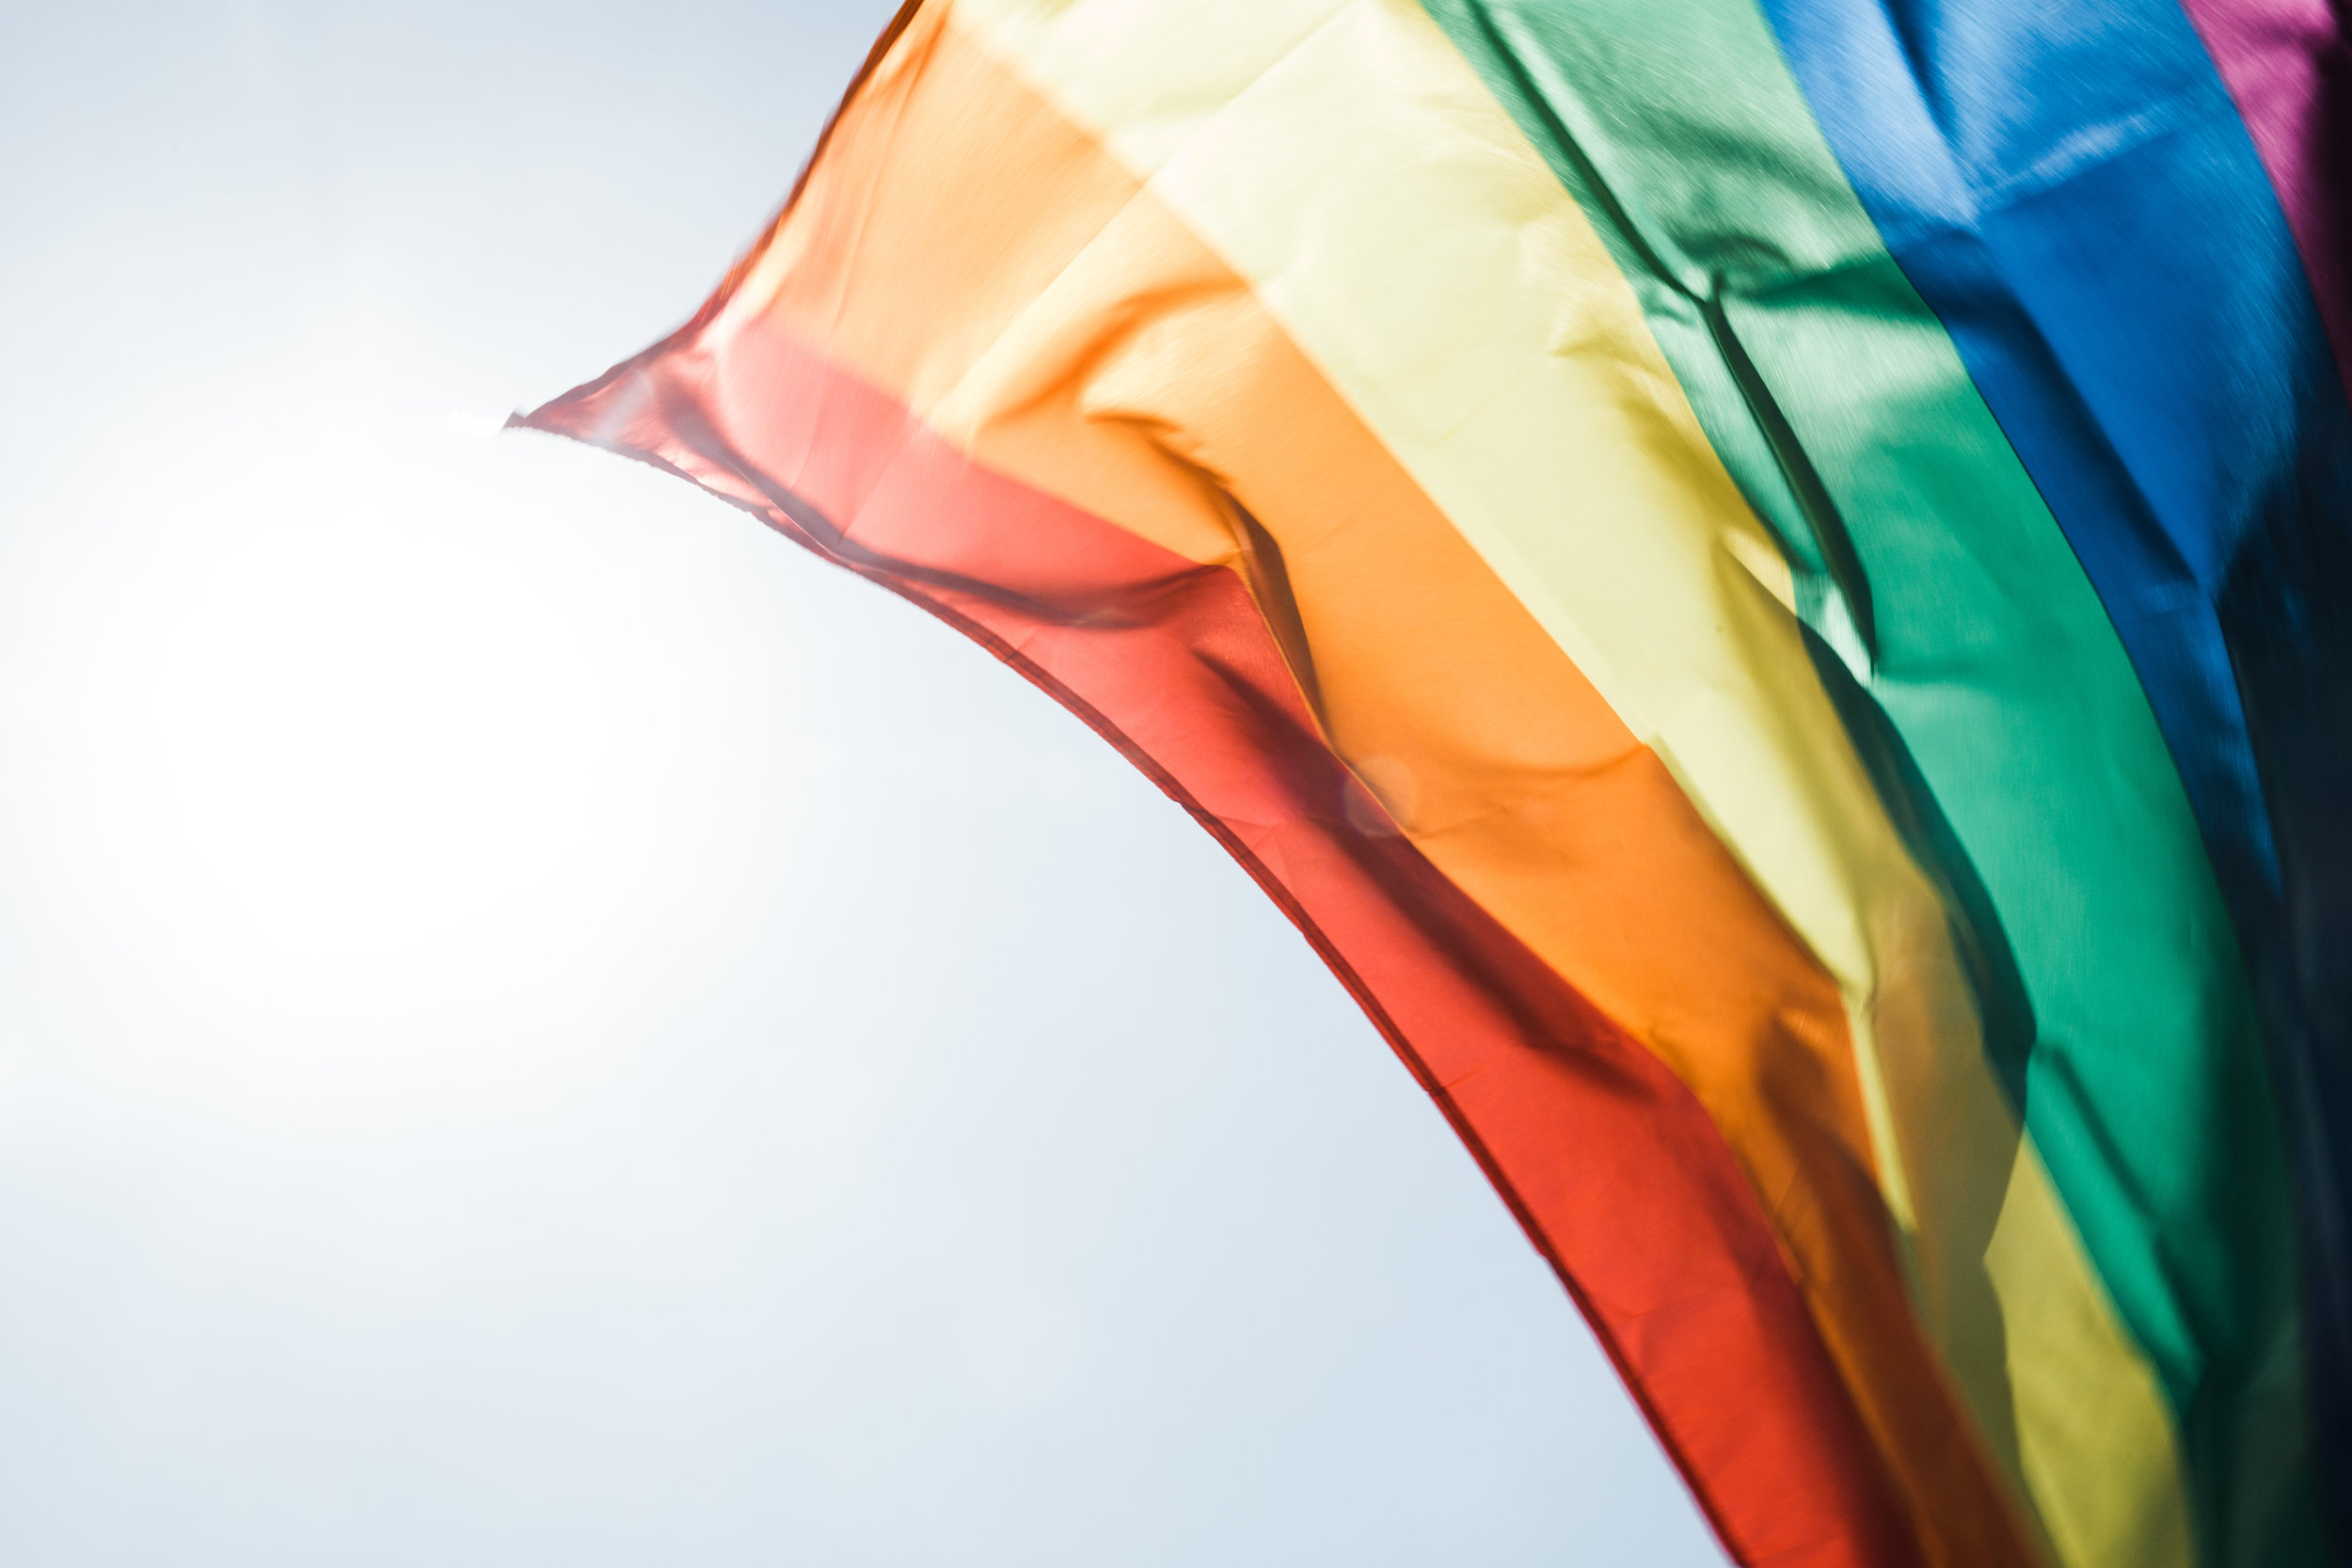 """LGBTQ+ - stands for lesbian, gay, bisexual, transgender, questioning and """"plus,"""" which represents other sexual identities including pansexual, asexual and omnisexual. It's the accepted and inclusive way to refer to the queer community, who can be grouped by one common theme: the fact they don't identify as straight or cisgender."""